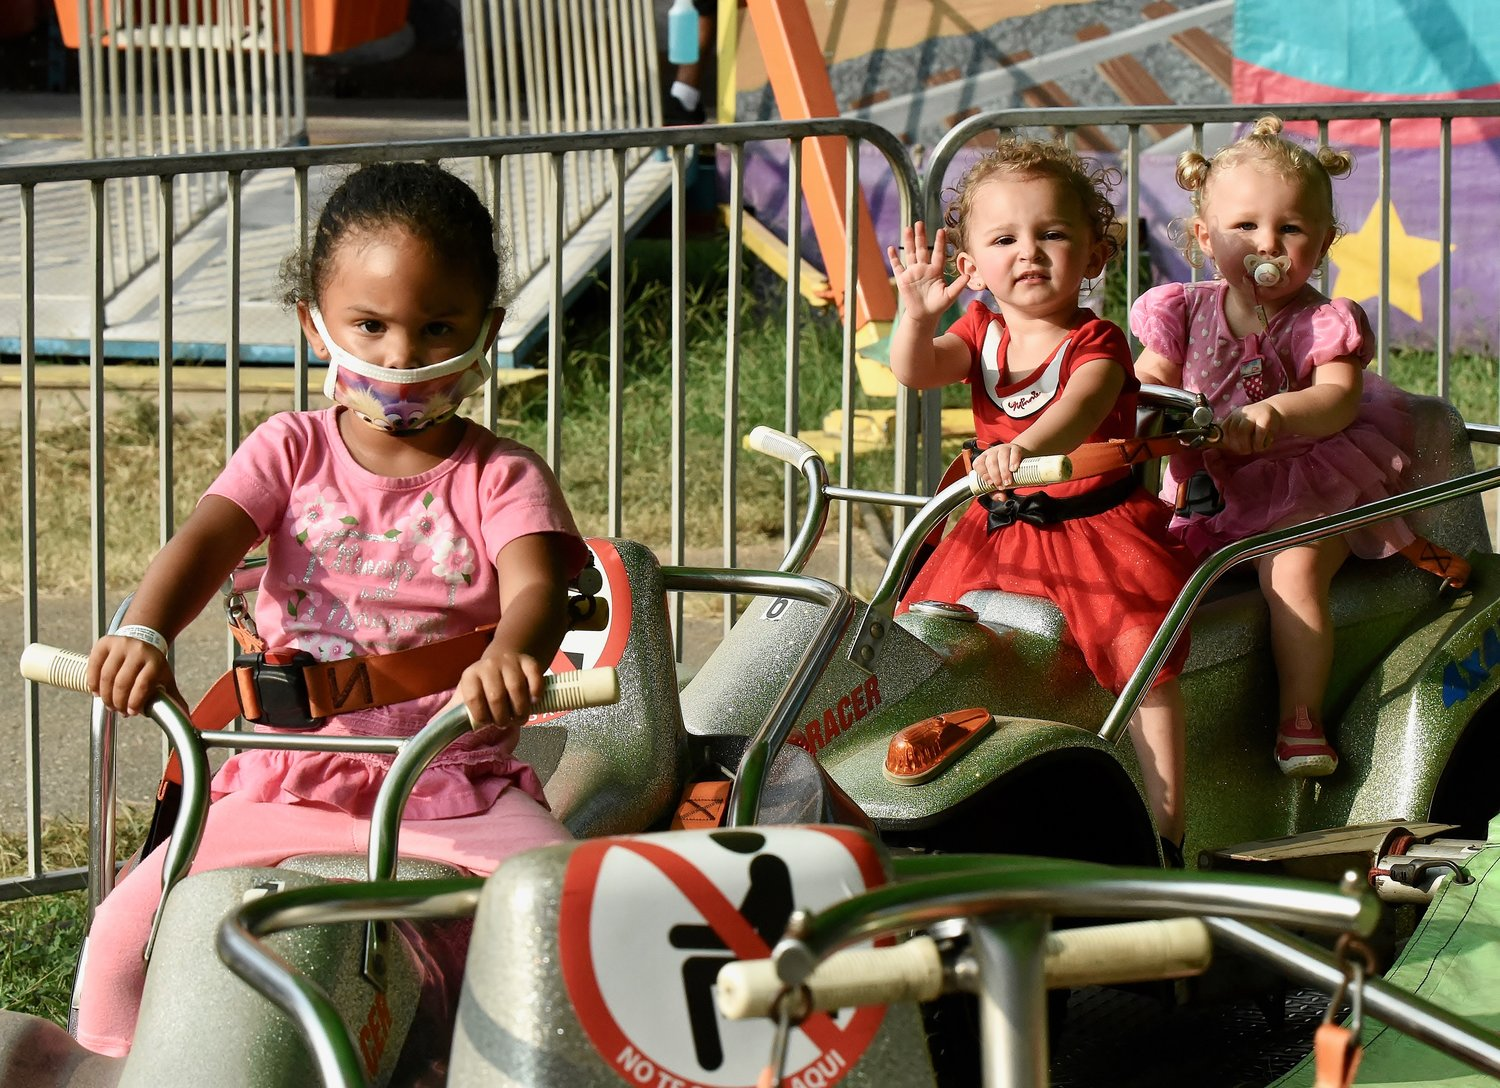 From left, 3-year-old Lilly Carter of Rome, Gloryann Jones-Bey, also 3, and her sister Cayleigh, 2, of Acworth, enjoy Peachtree Rides' carnival at the American Legion Carl Boyd Post 42 Fairgrounds Wednesday.